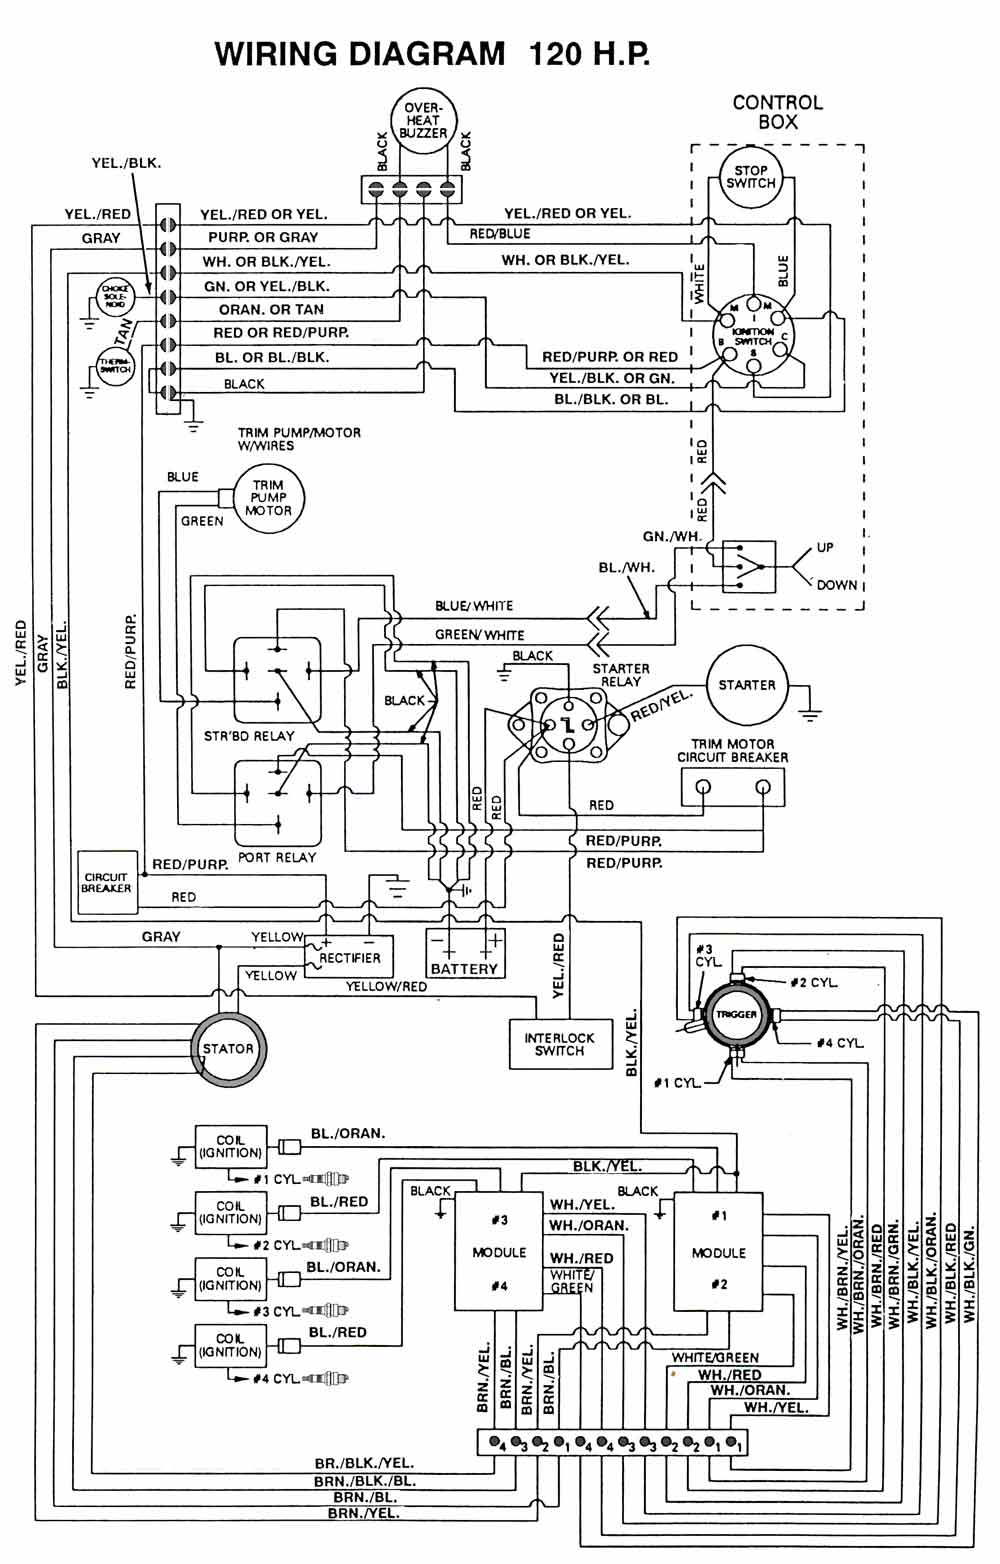 hight resolution of 50 hp force outboard wiring diagram trusted wiring diagram 35 hp mercury outboard wiring schematic 1989 force 50 hp wiring diagram